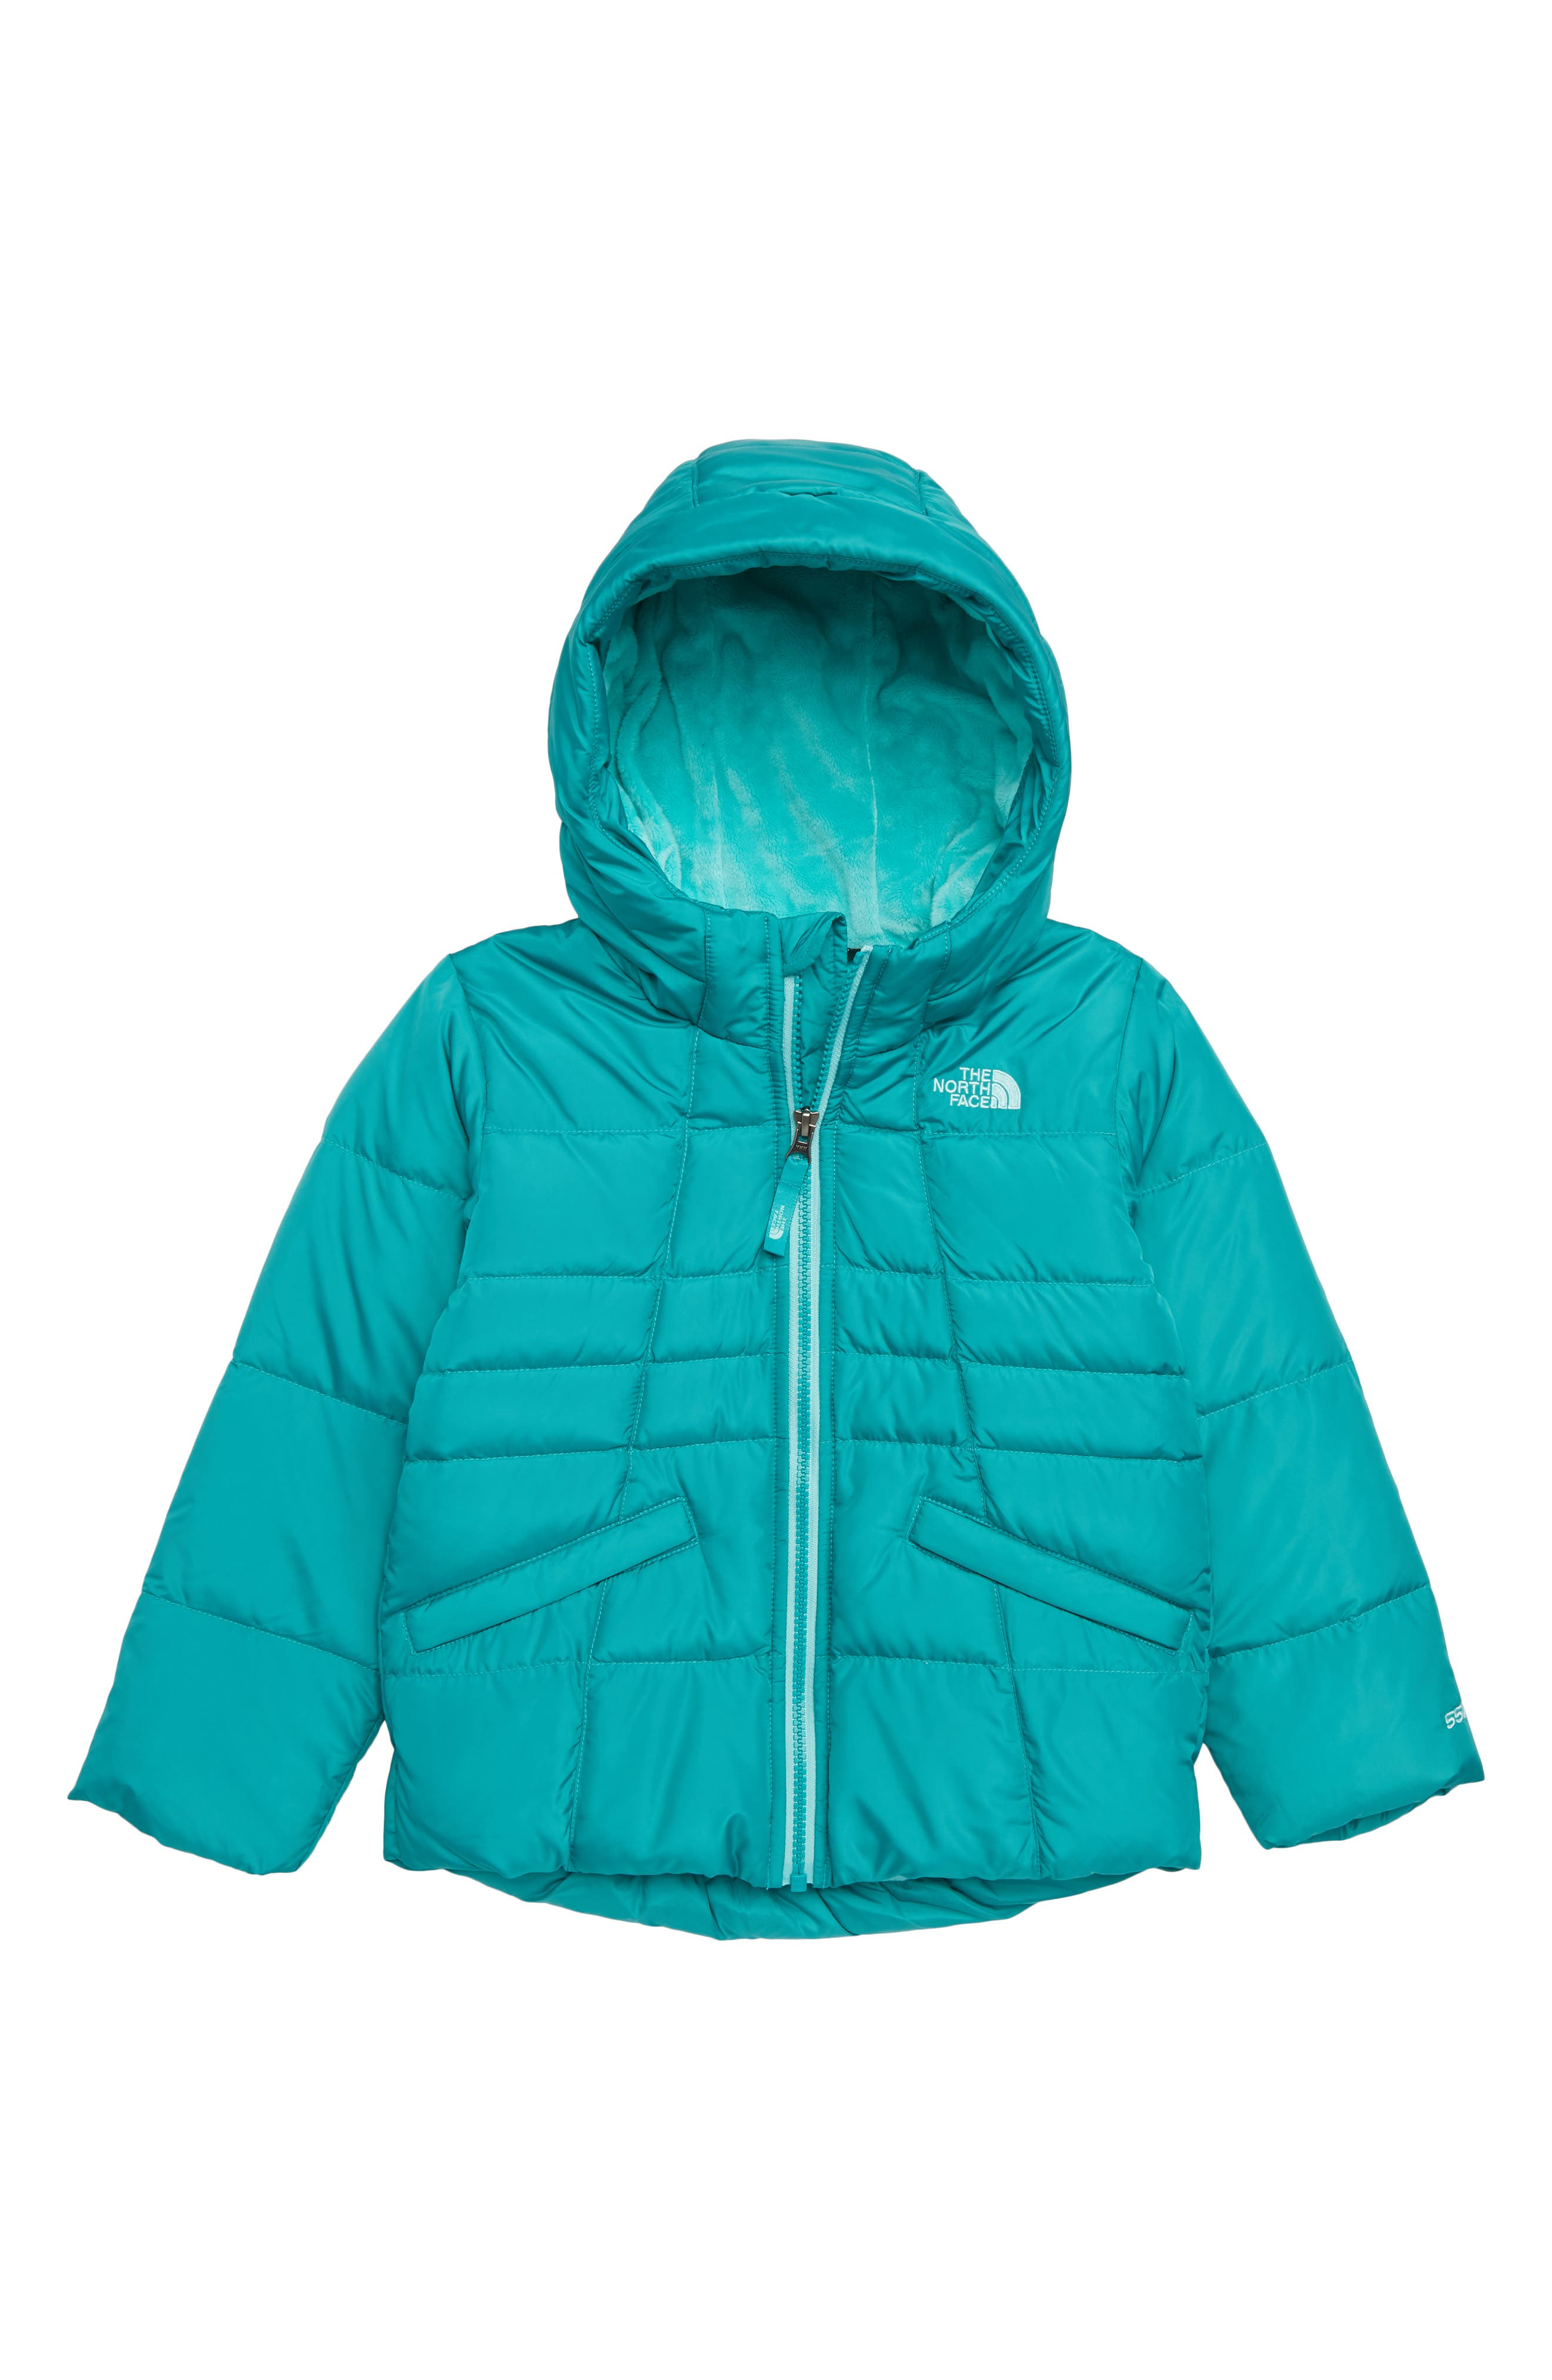 Toddler Girls The North Face Moondoggy 20 Water Repellent Down Jacket Size 3T  Bluegreen